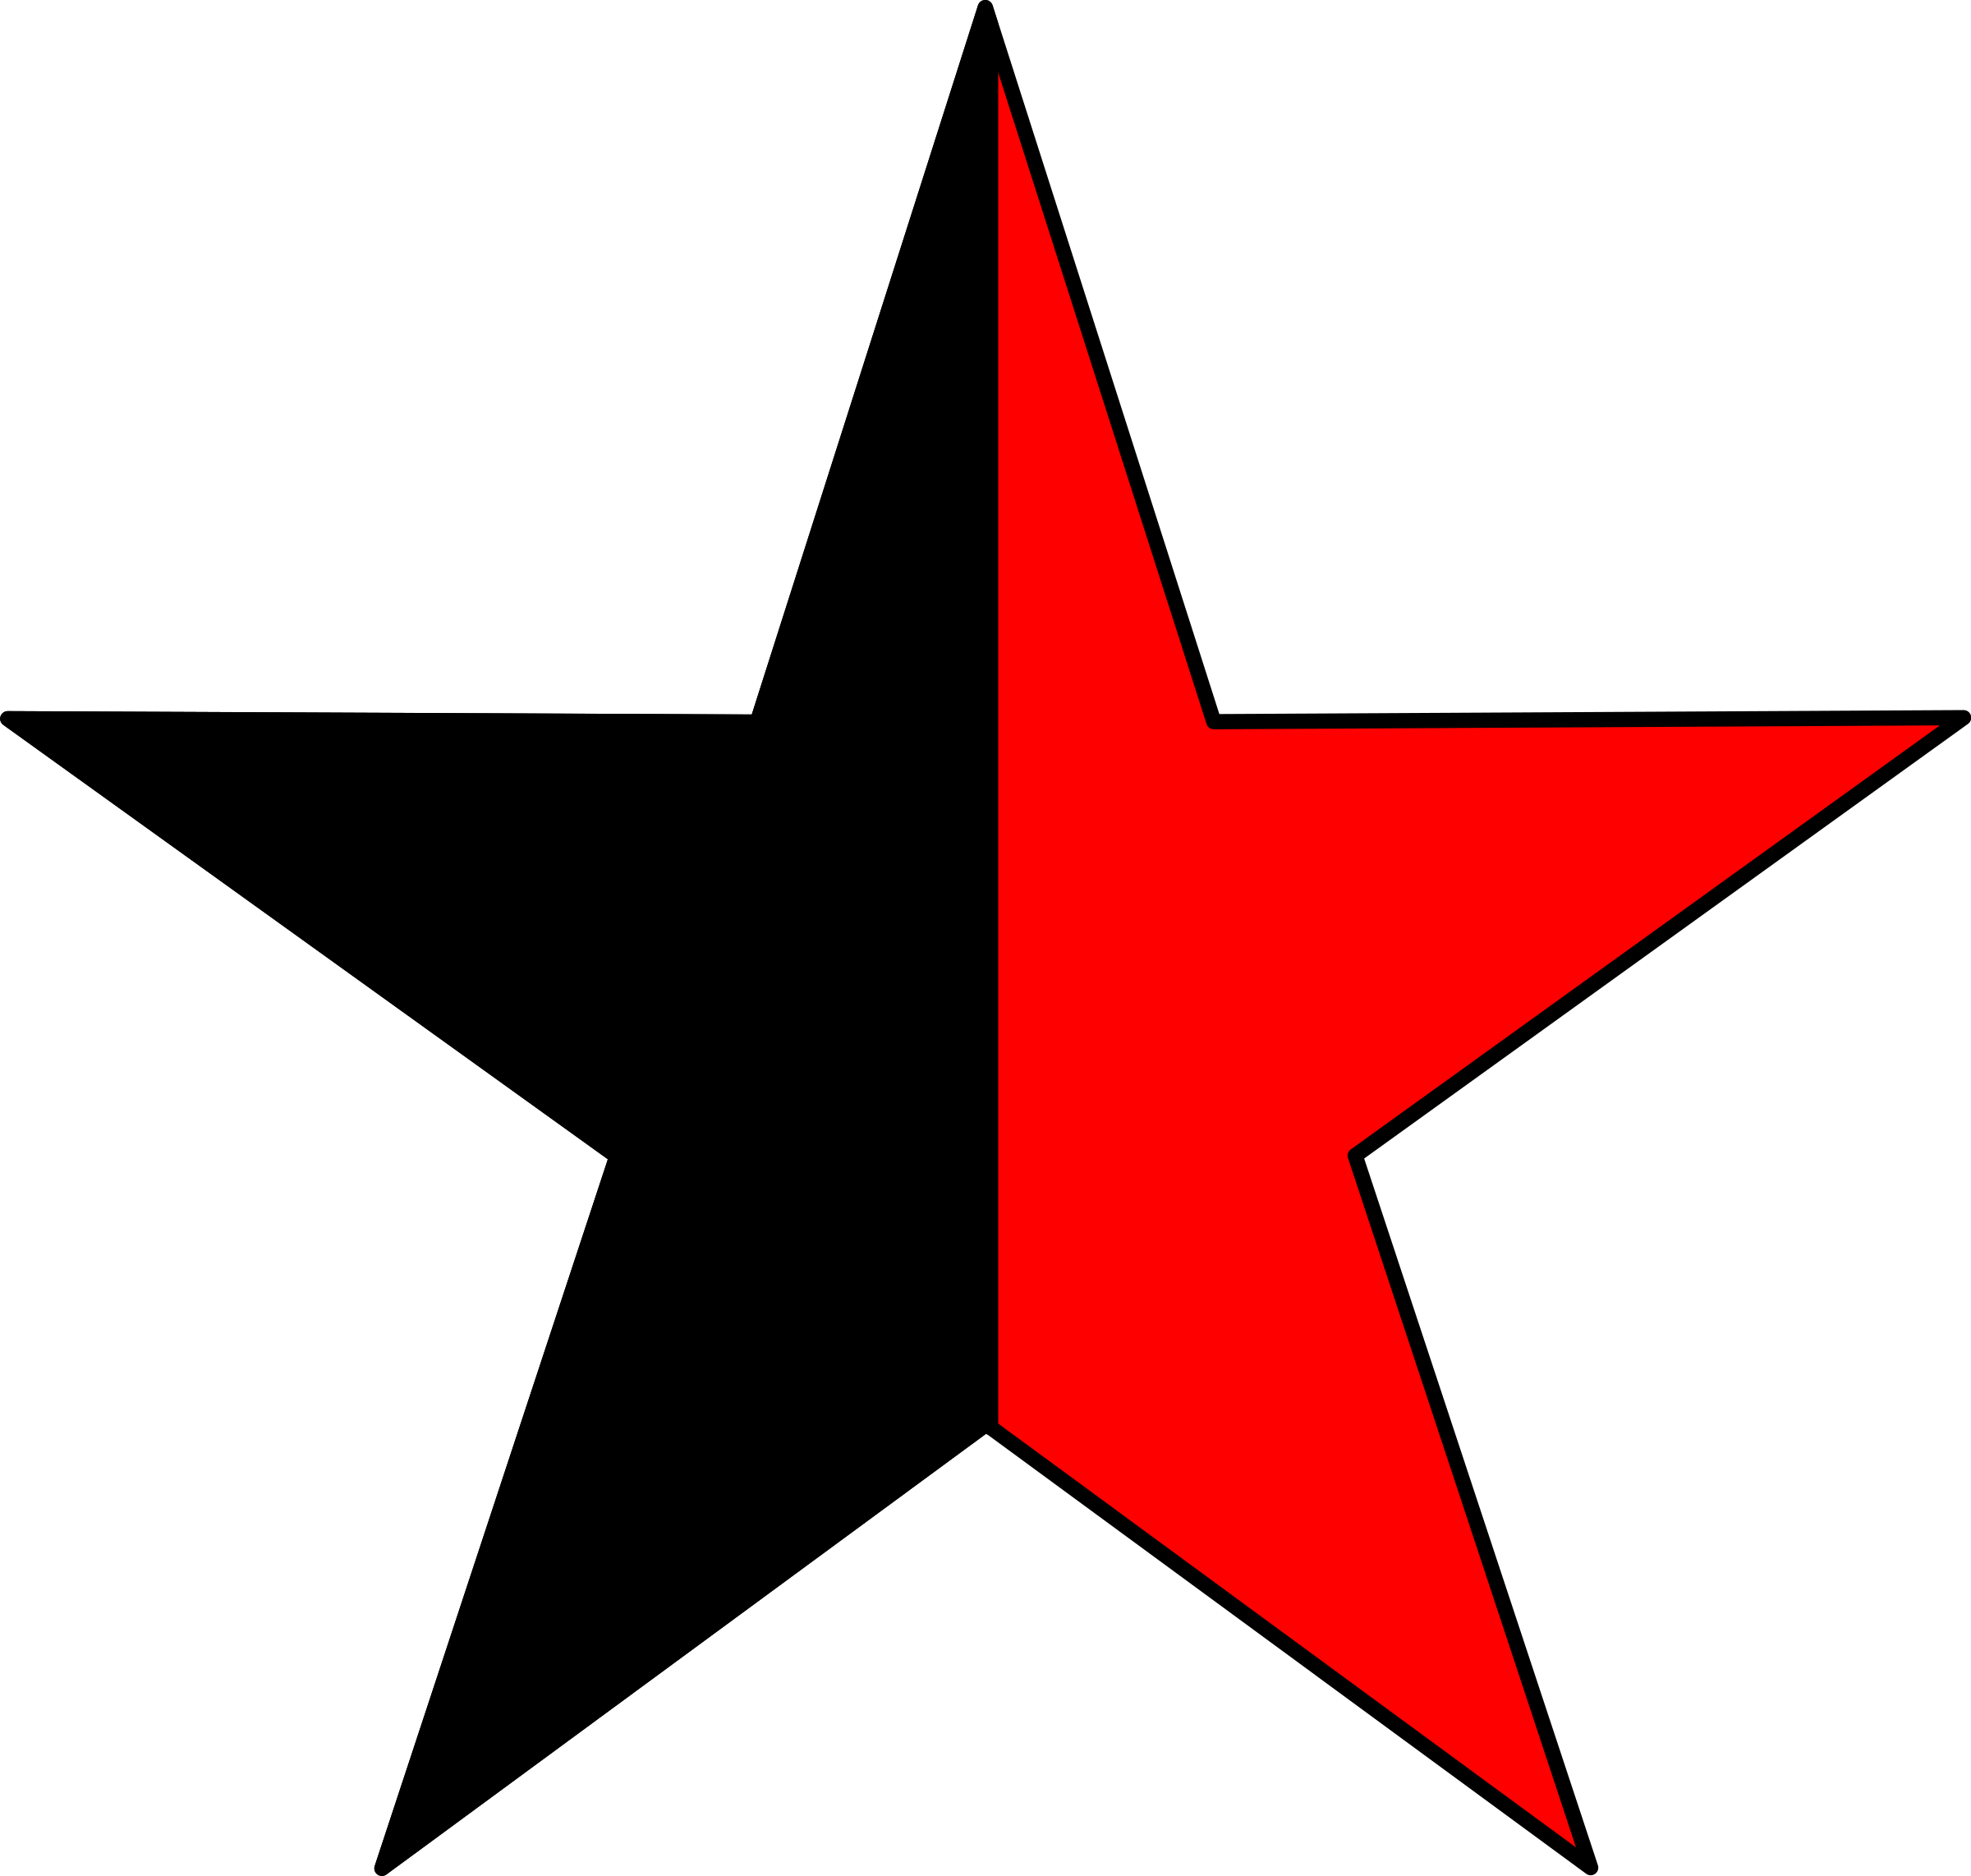 Anarcho-communism by Andy_Gardner